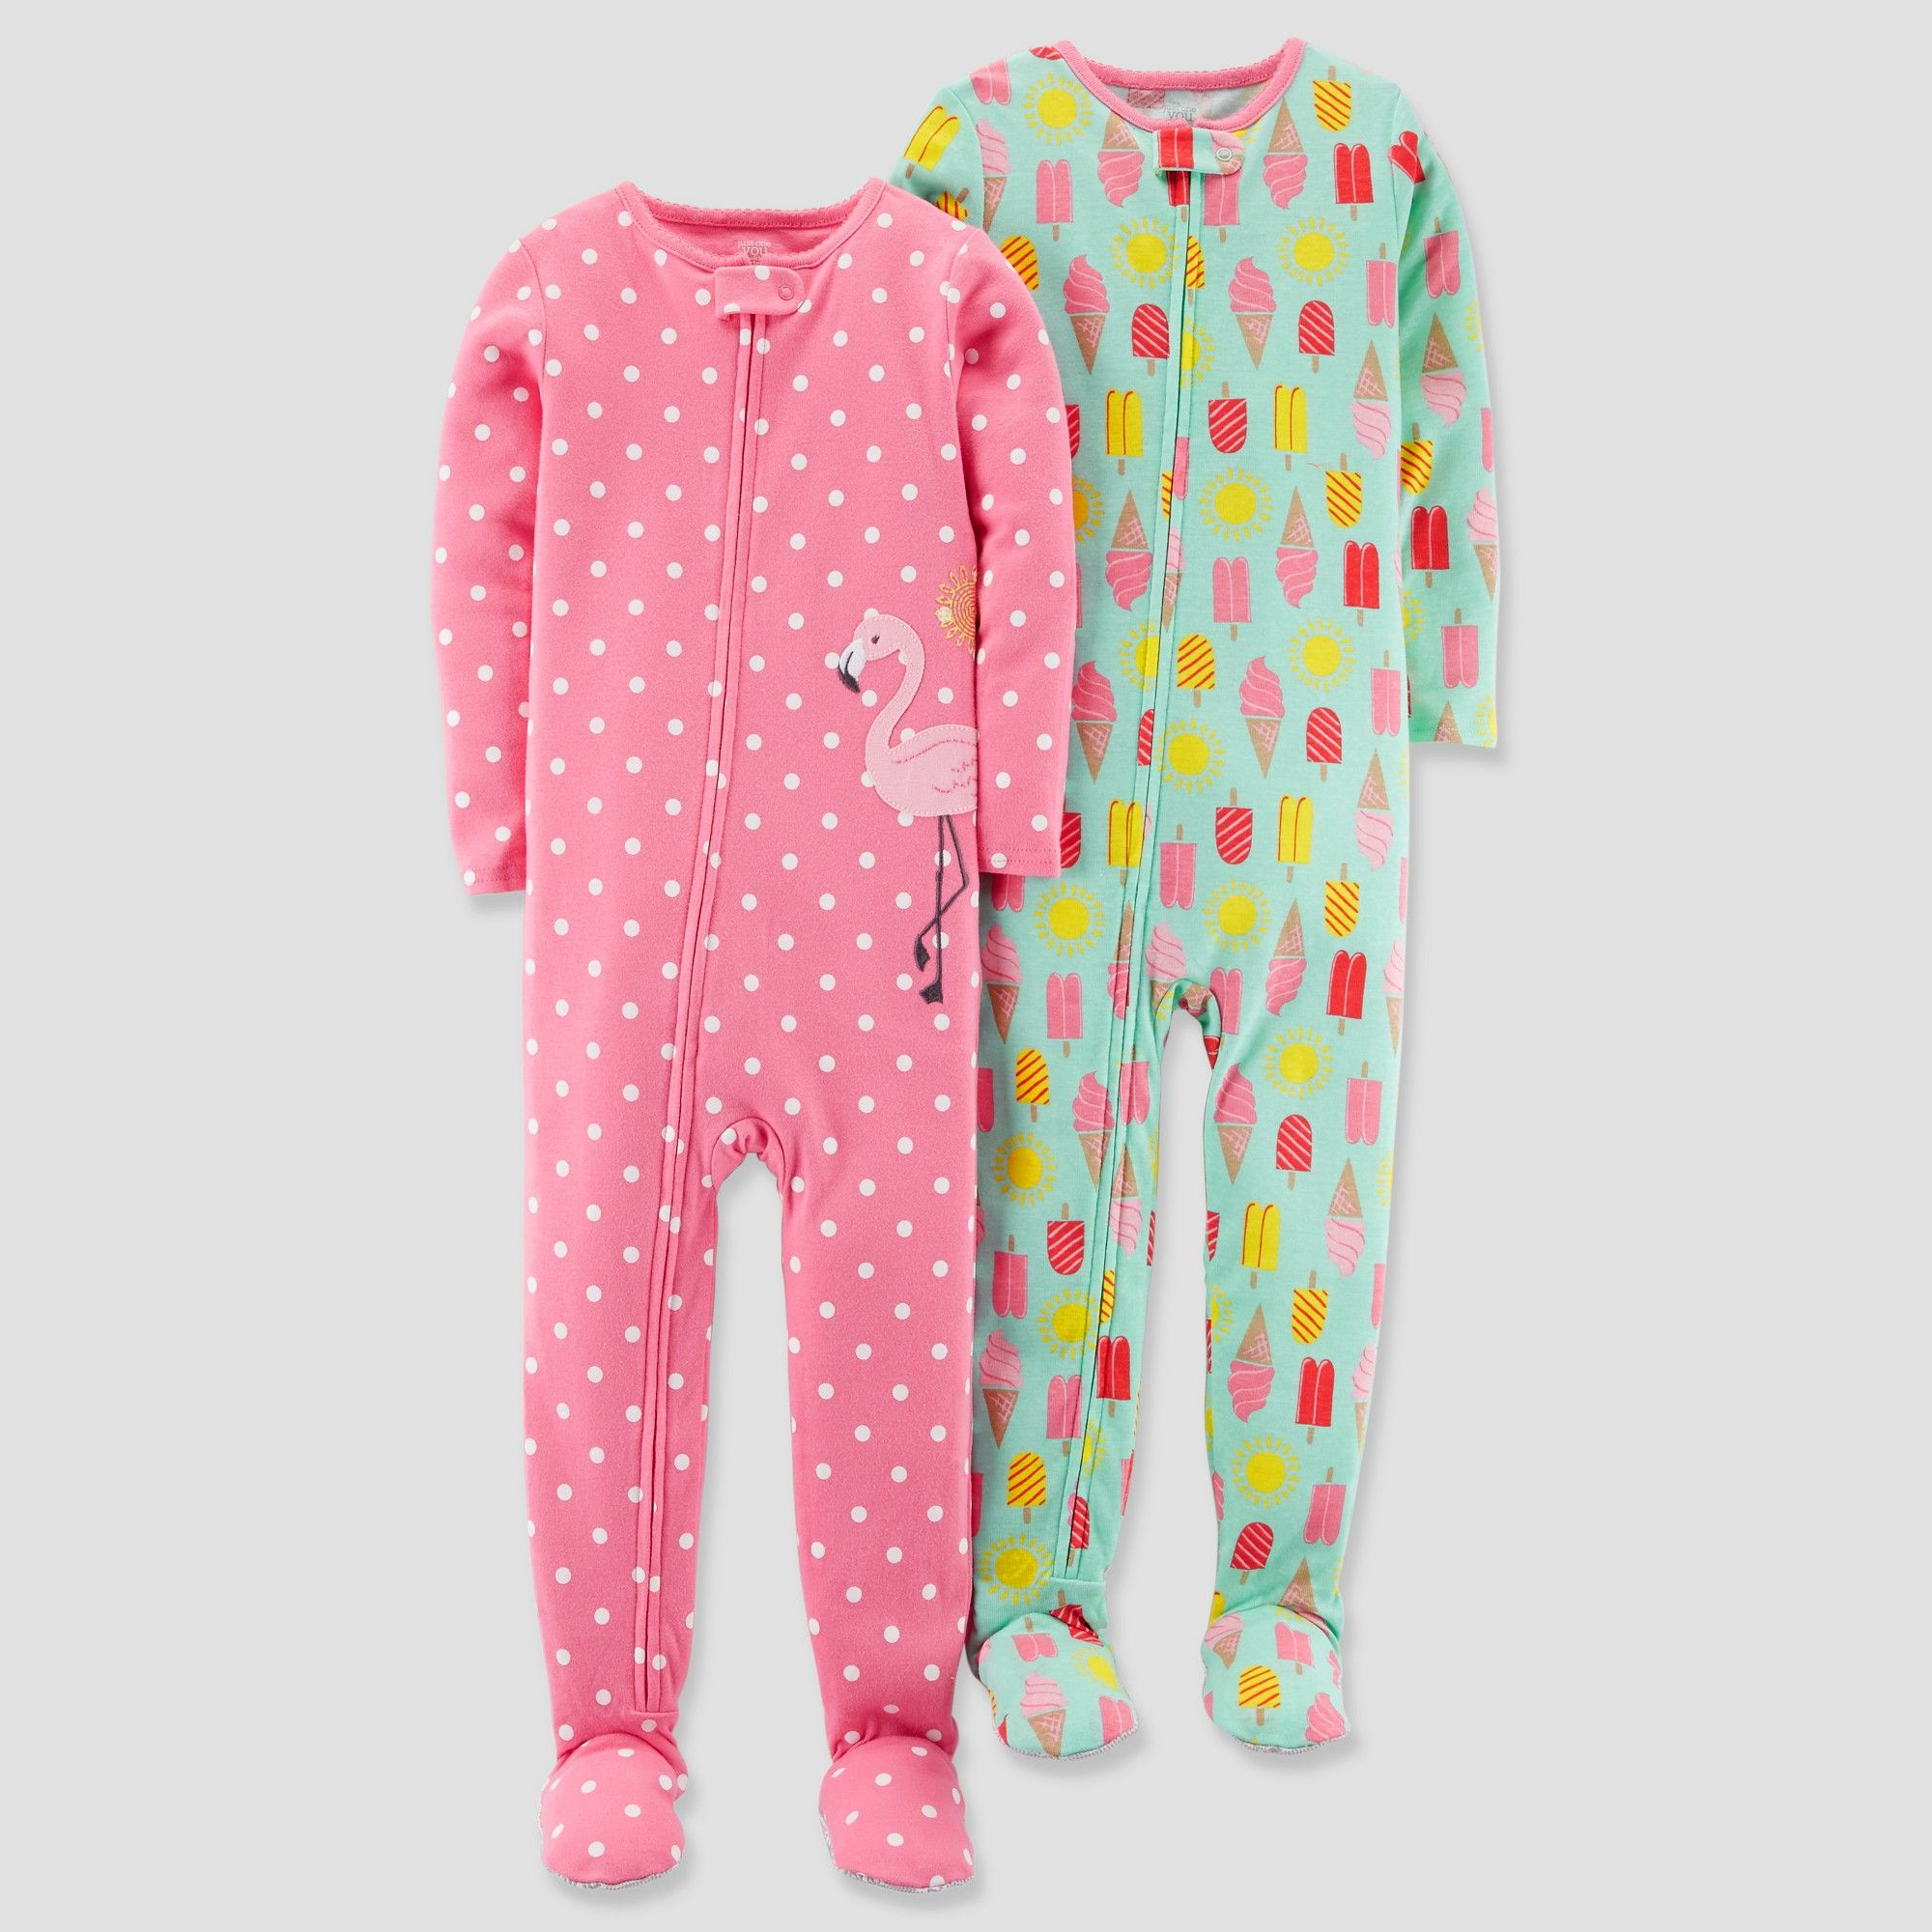 4cbb7875a67e Toddler Girls  2pk Cotton Polka Dot   Ice Cream Footed Pajama Set ...